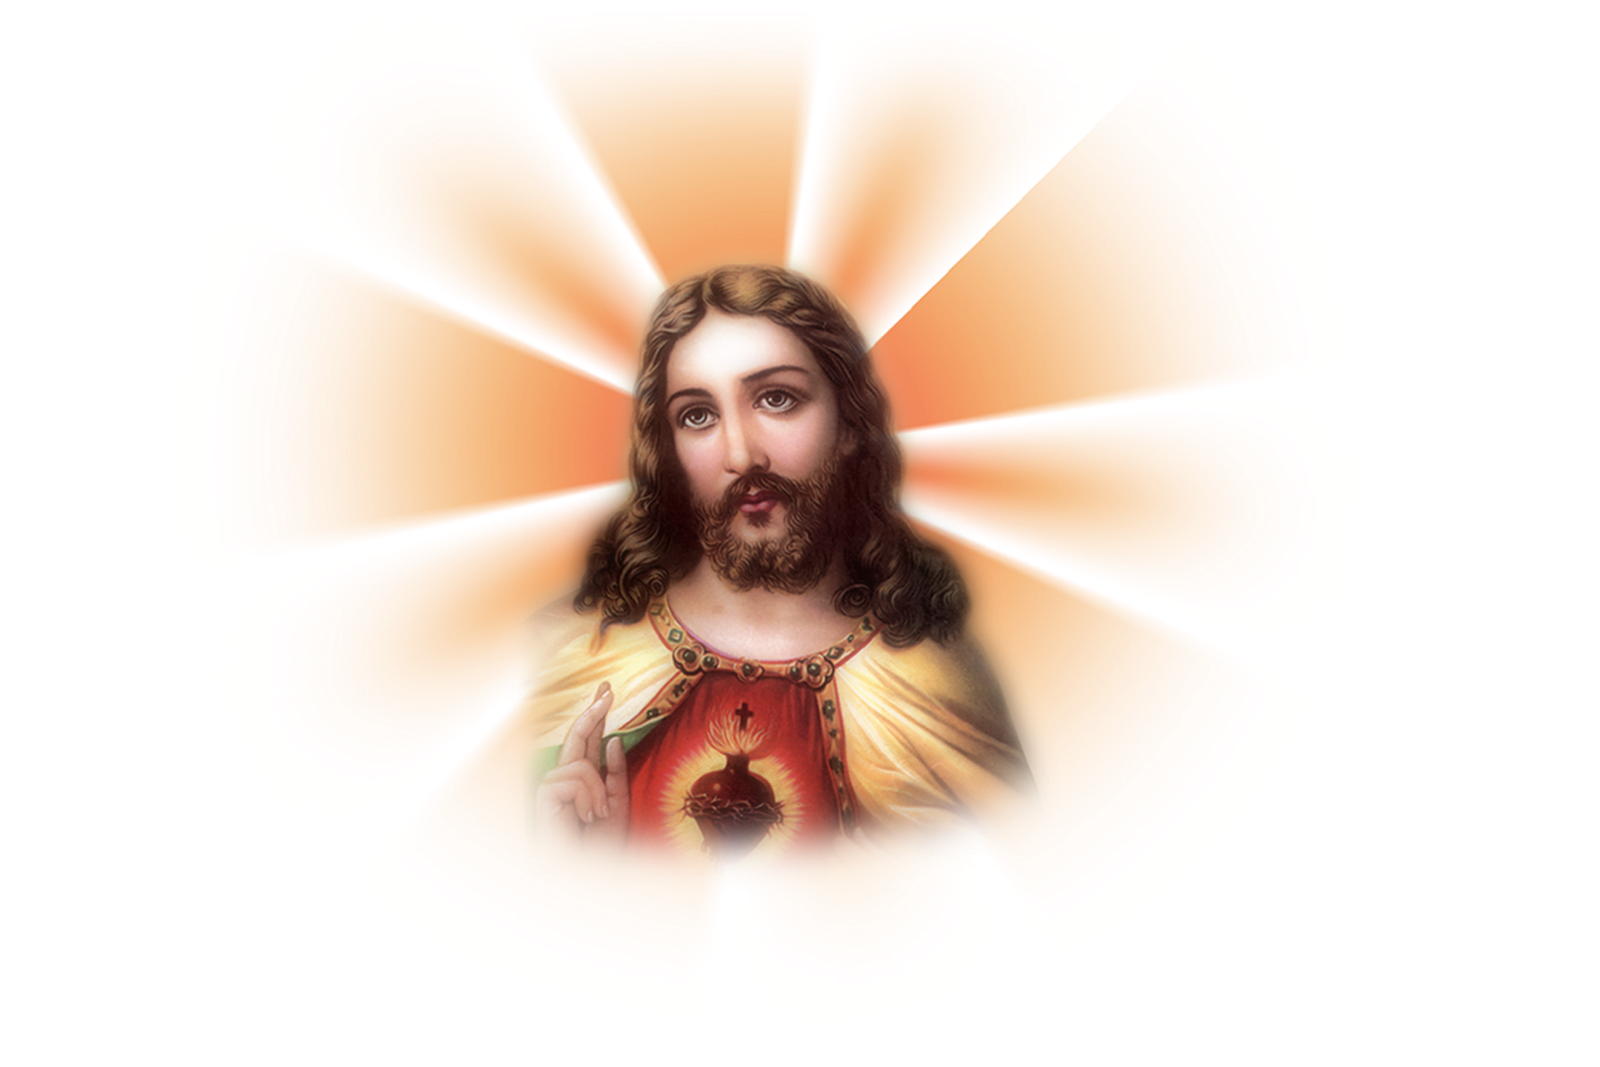 Jesus 14 Song God Christianity Part Mpeg-4 PNG Image